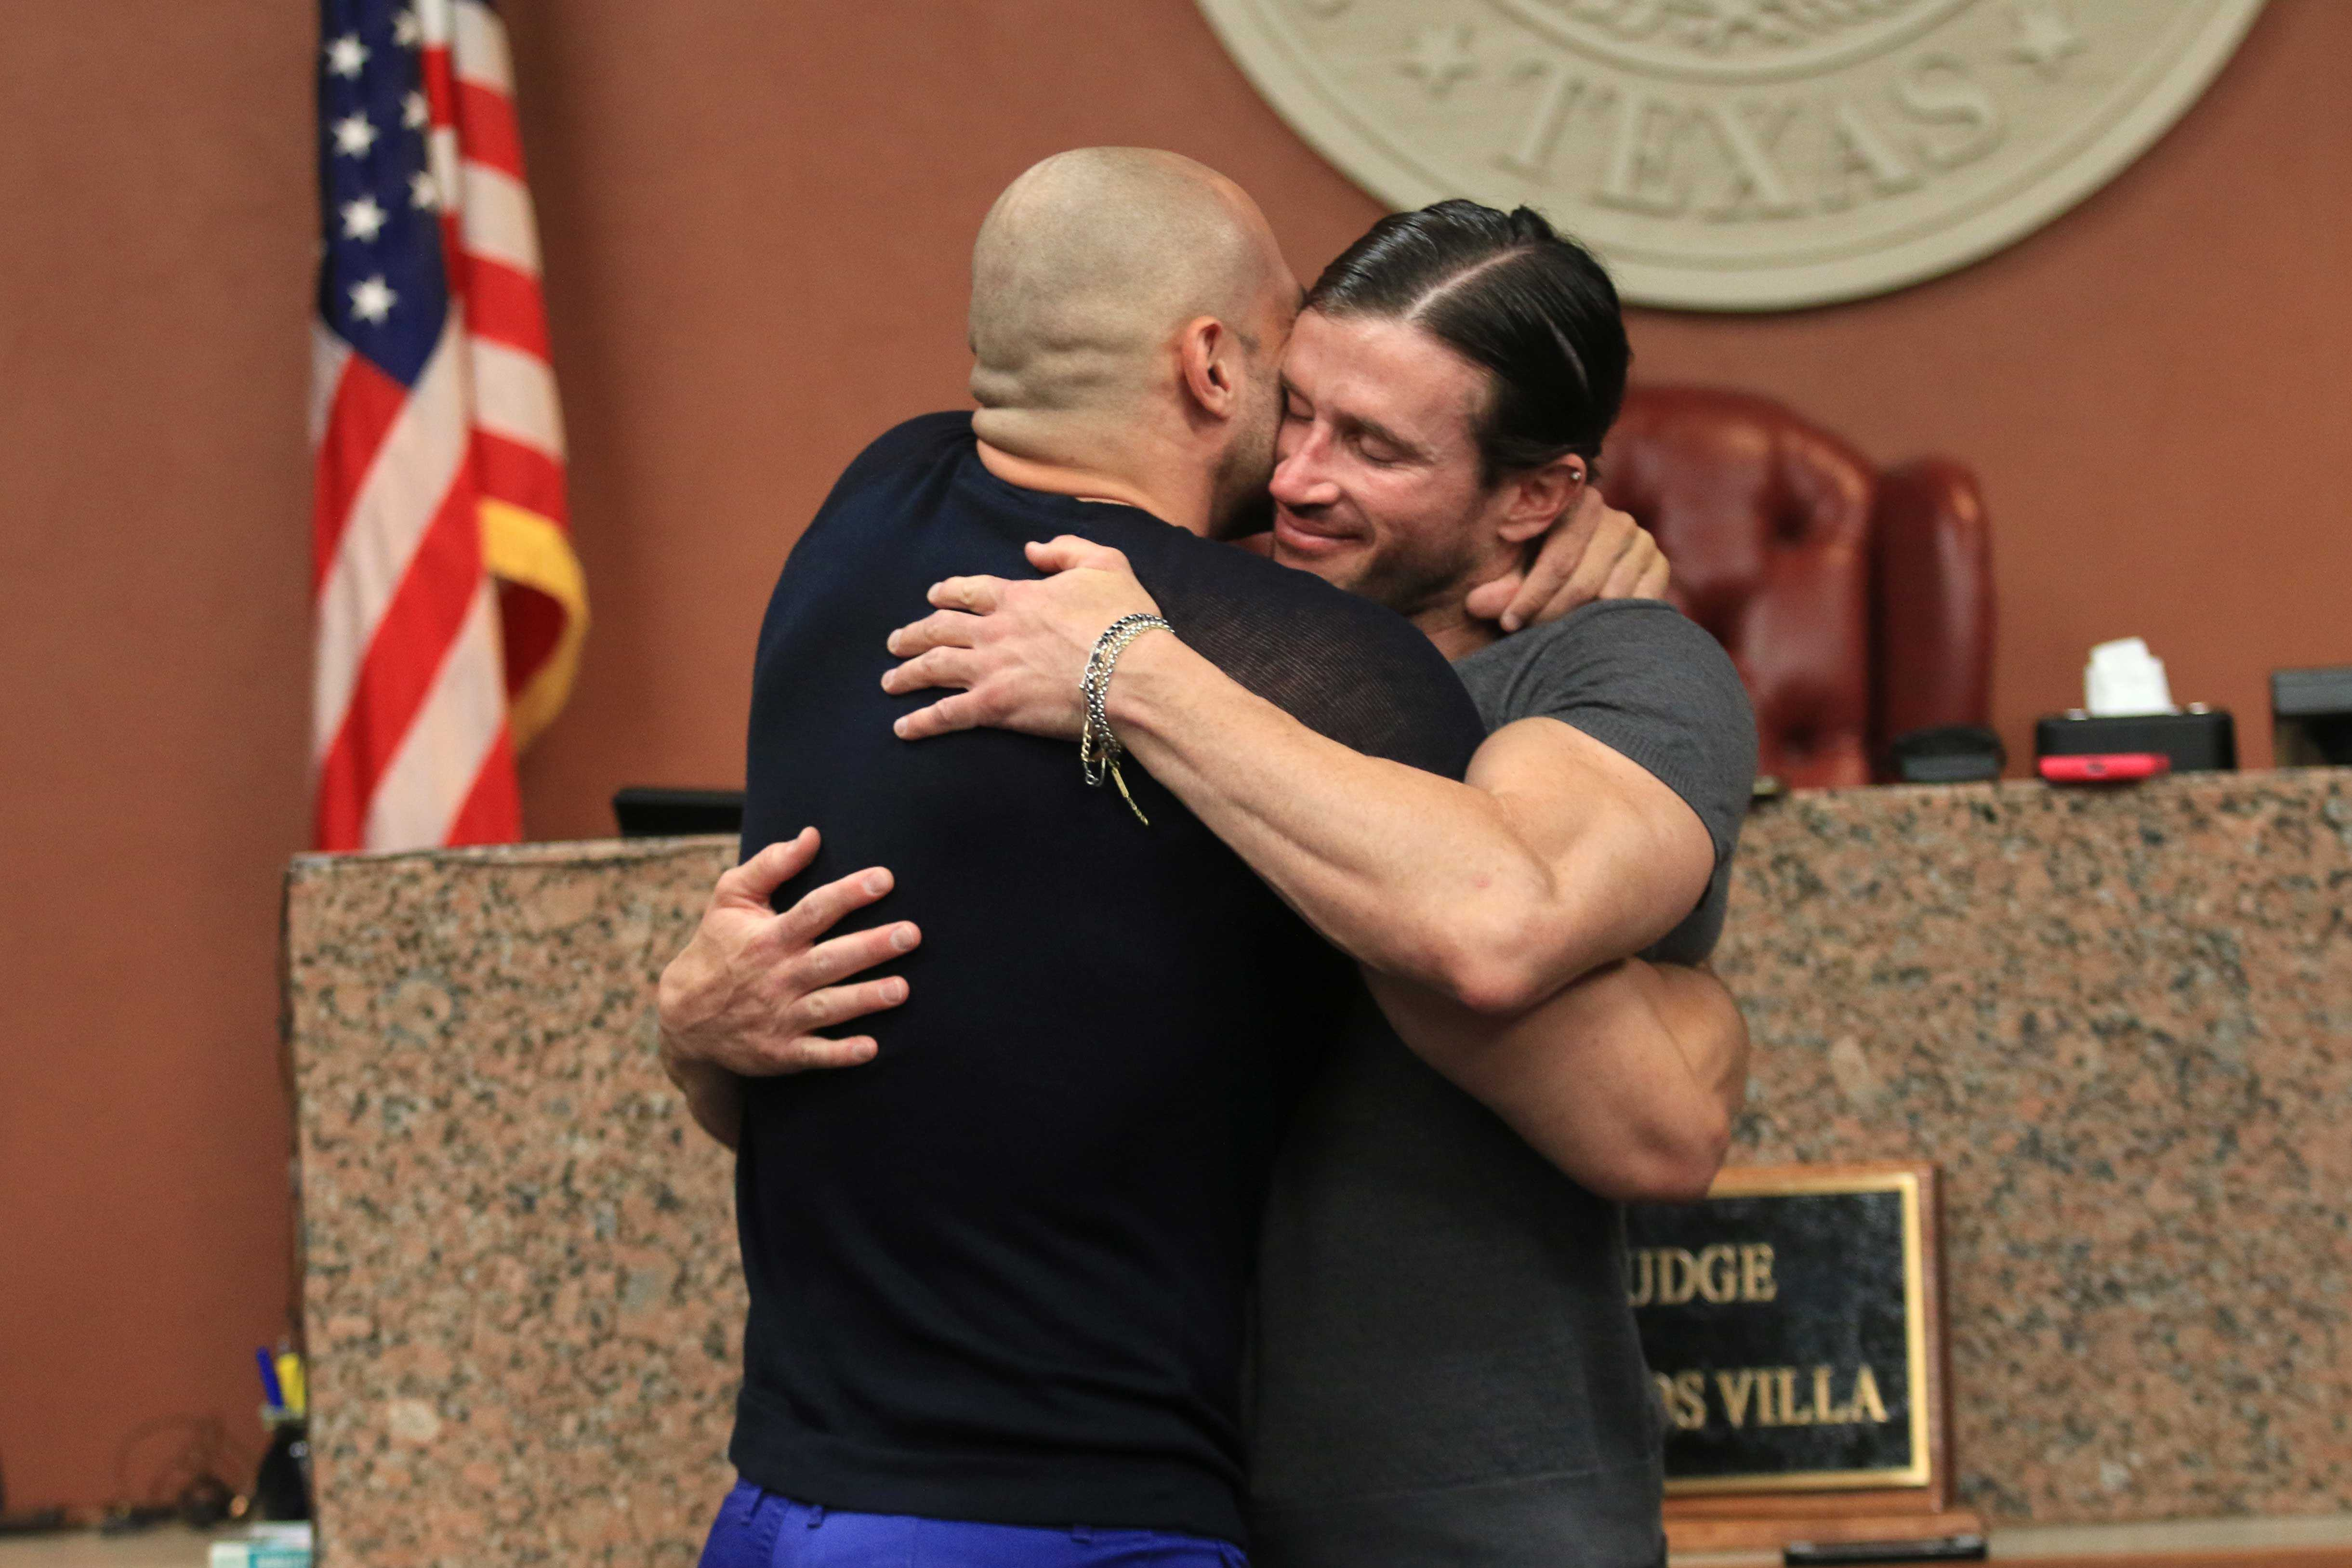 Yairo Herrera and Luke Oleander become the first gay couple married in El Paso County.